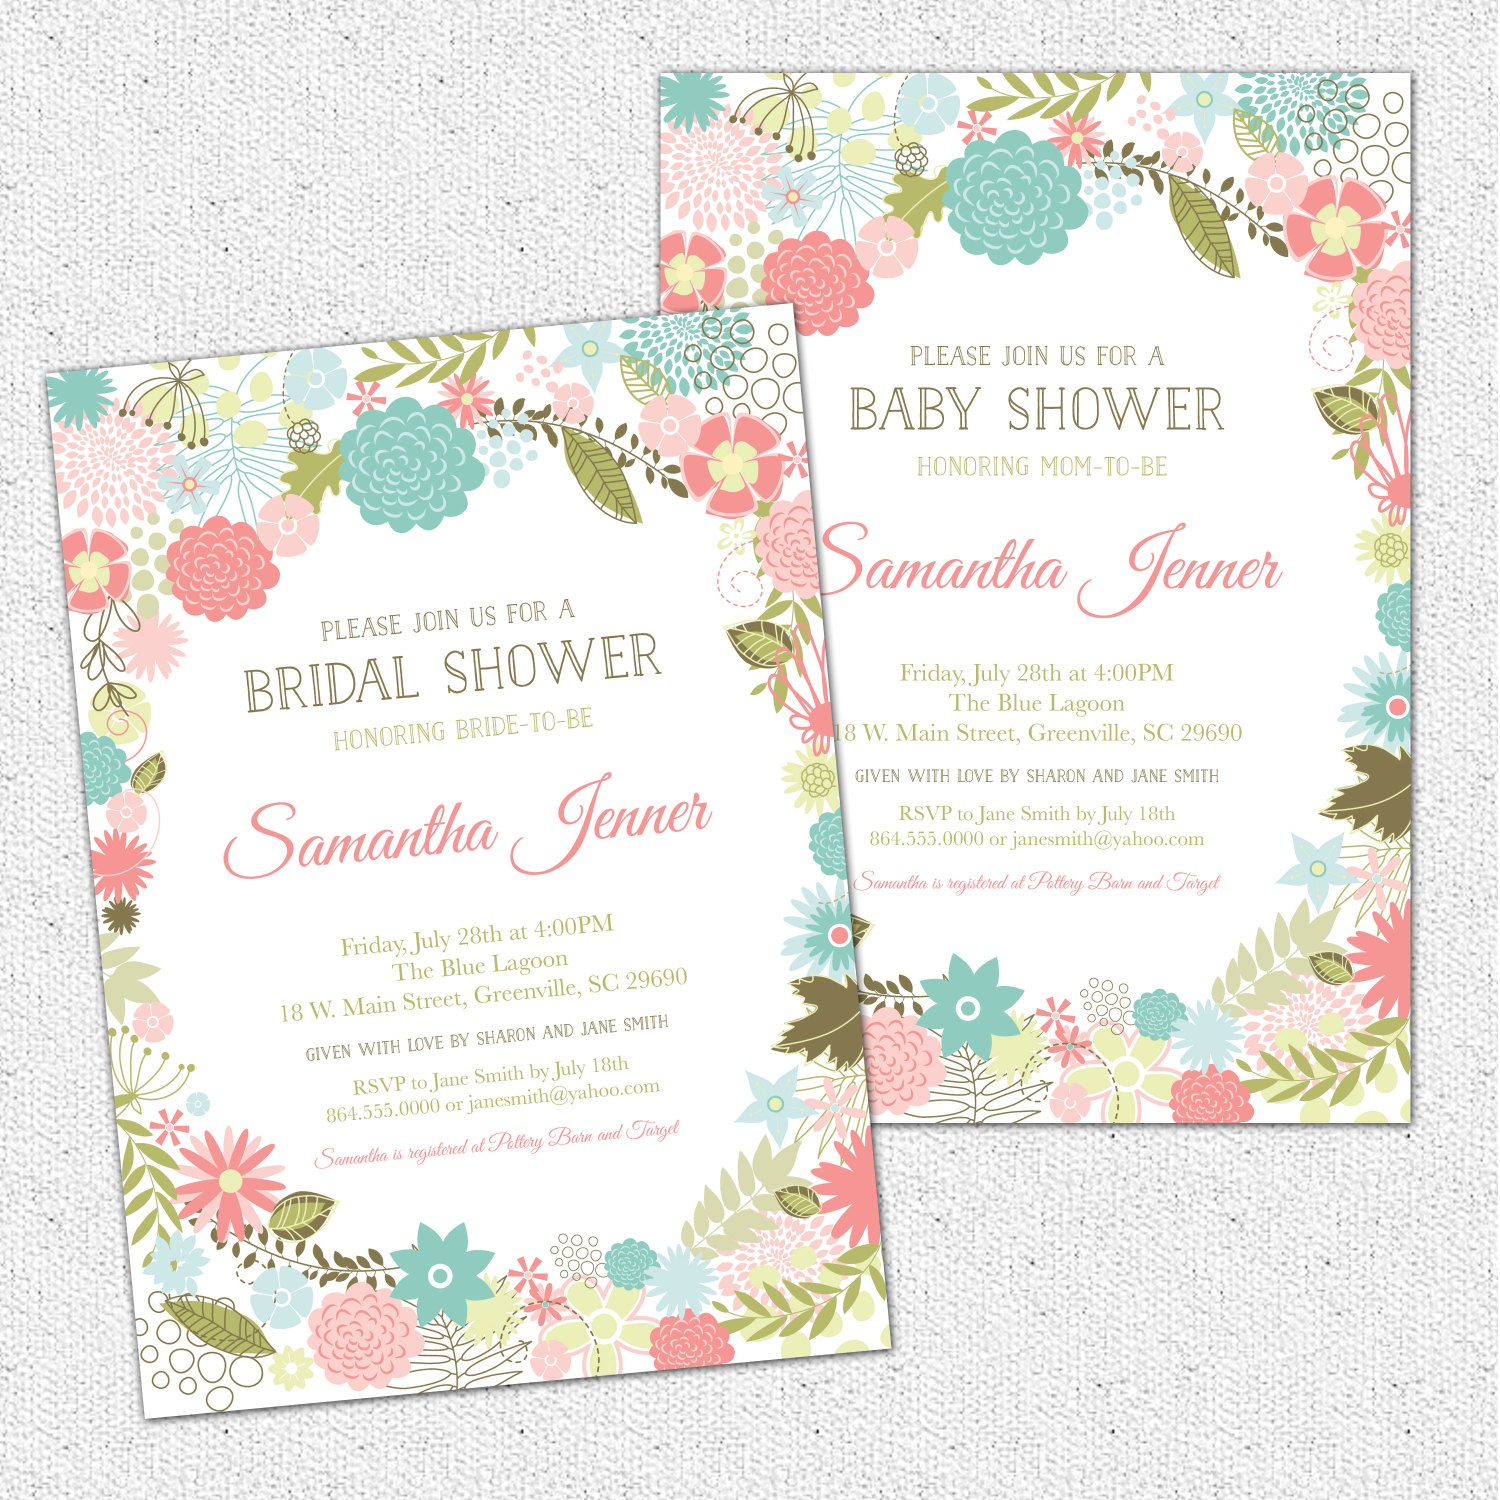 Retro Modern Flowers Bridal Baby Shower Invitations Floral